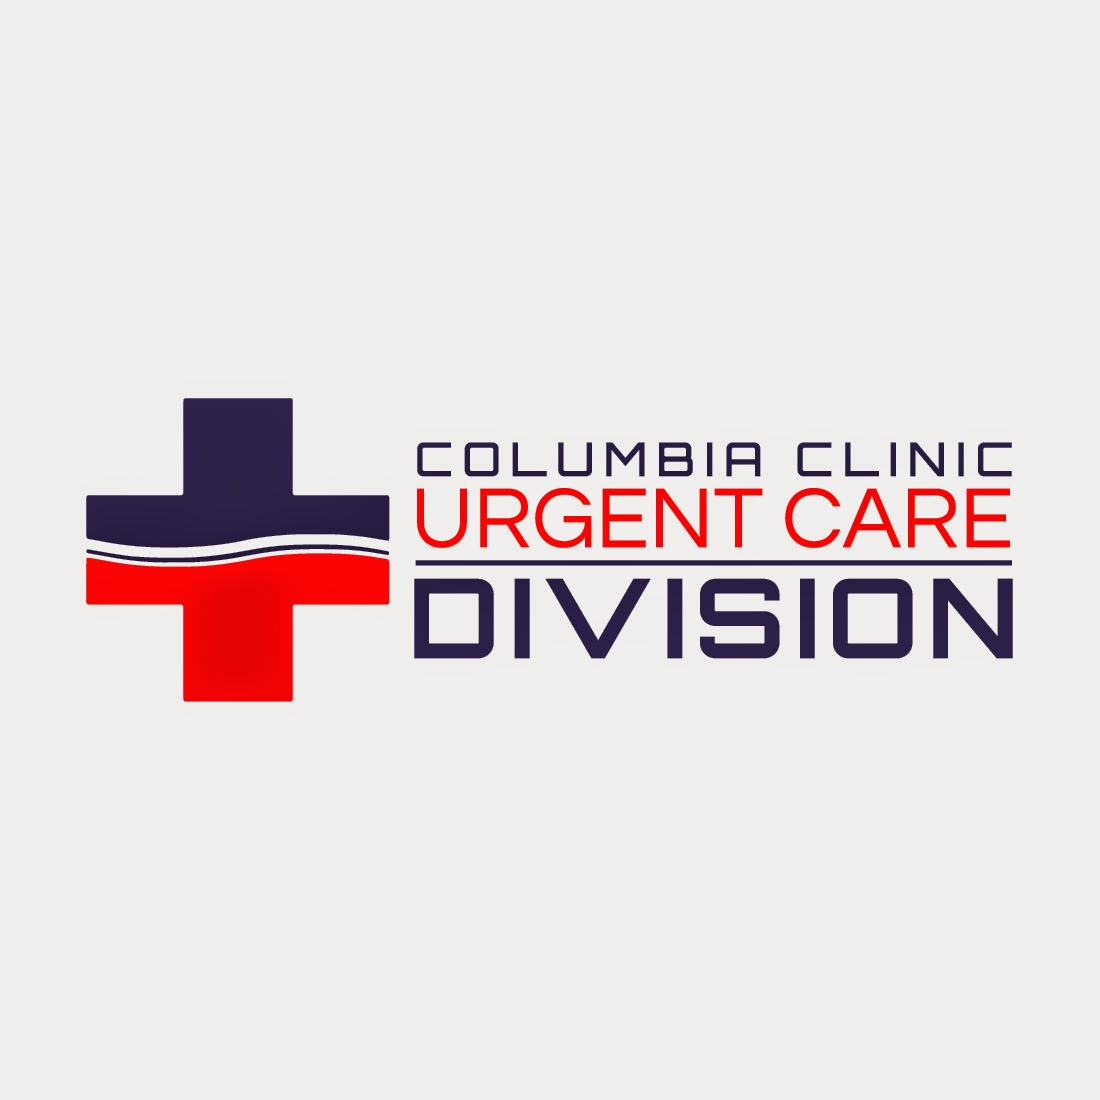 Columbia Clinic Urgent Care - Portland (Division St), OR | 16279 SE Division St, Portland, OR, 97236 | +1 (503) 966-5533